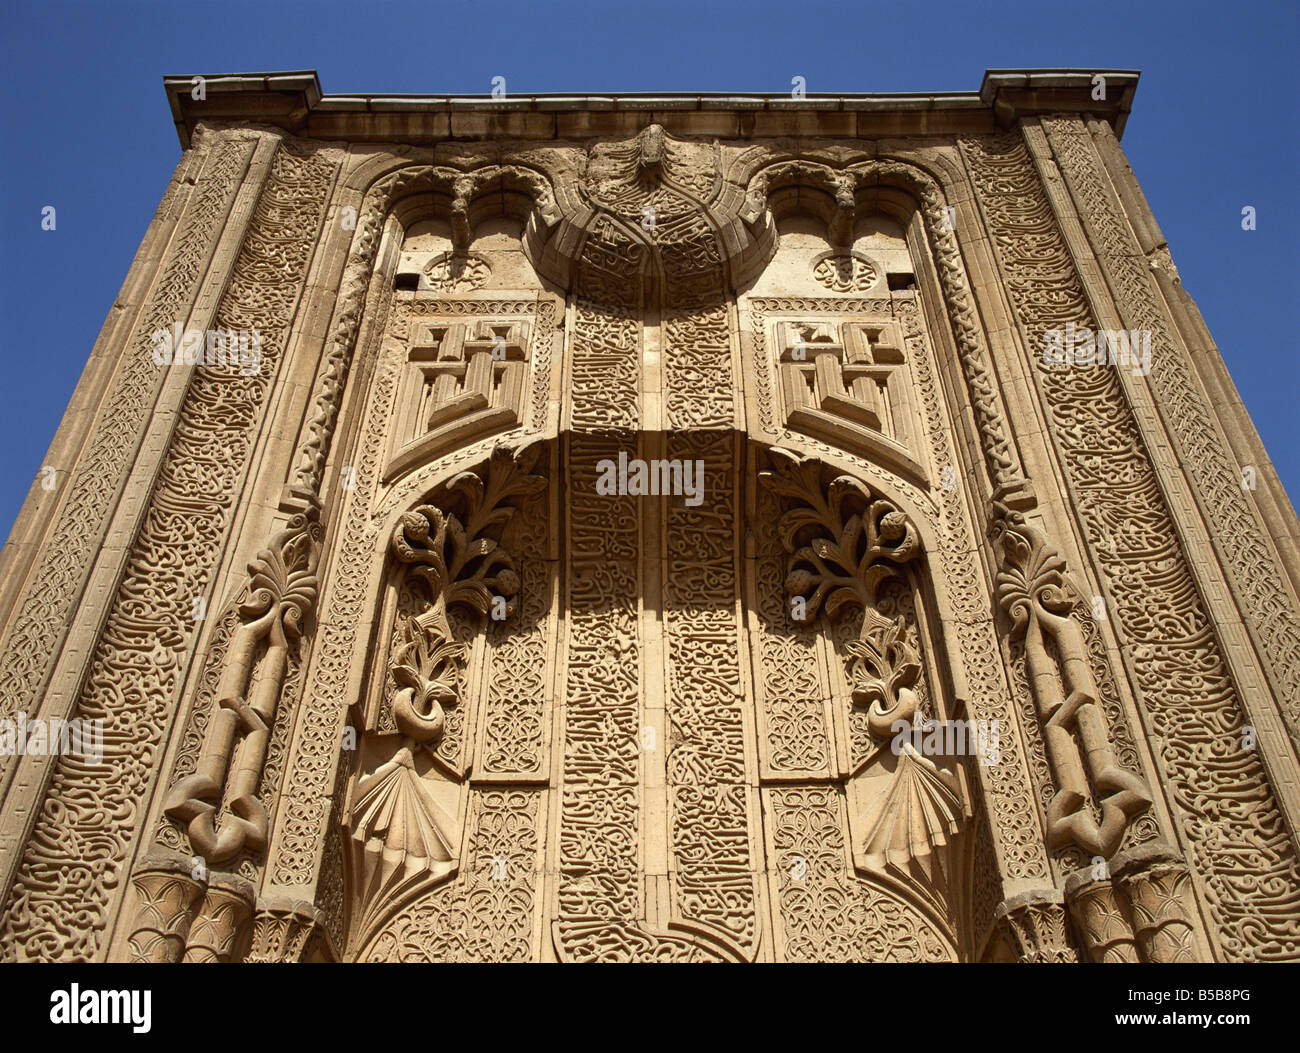 The portal of the Seljuk Ince Minare Medrese, now the ...